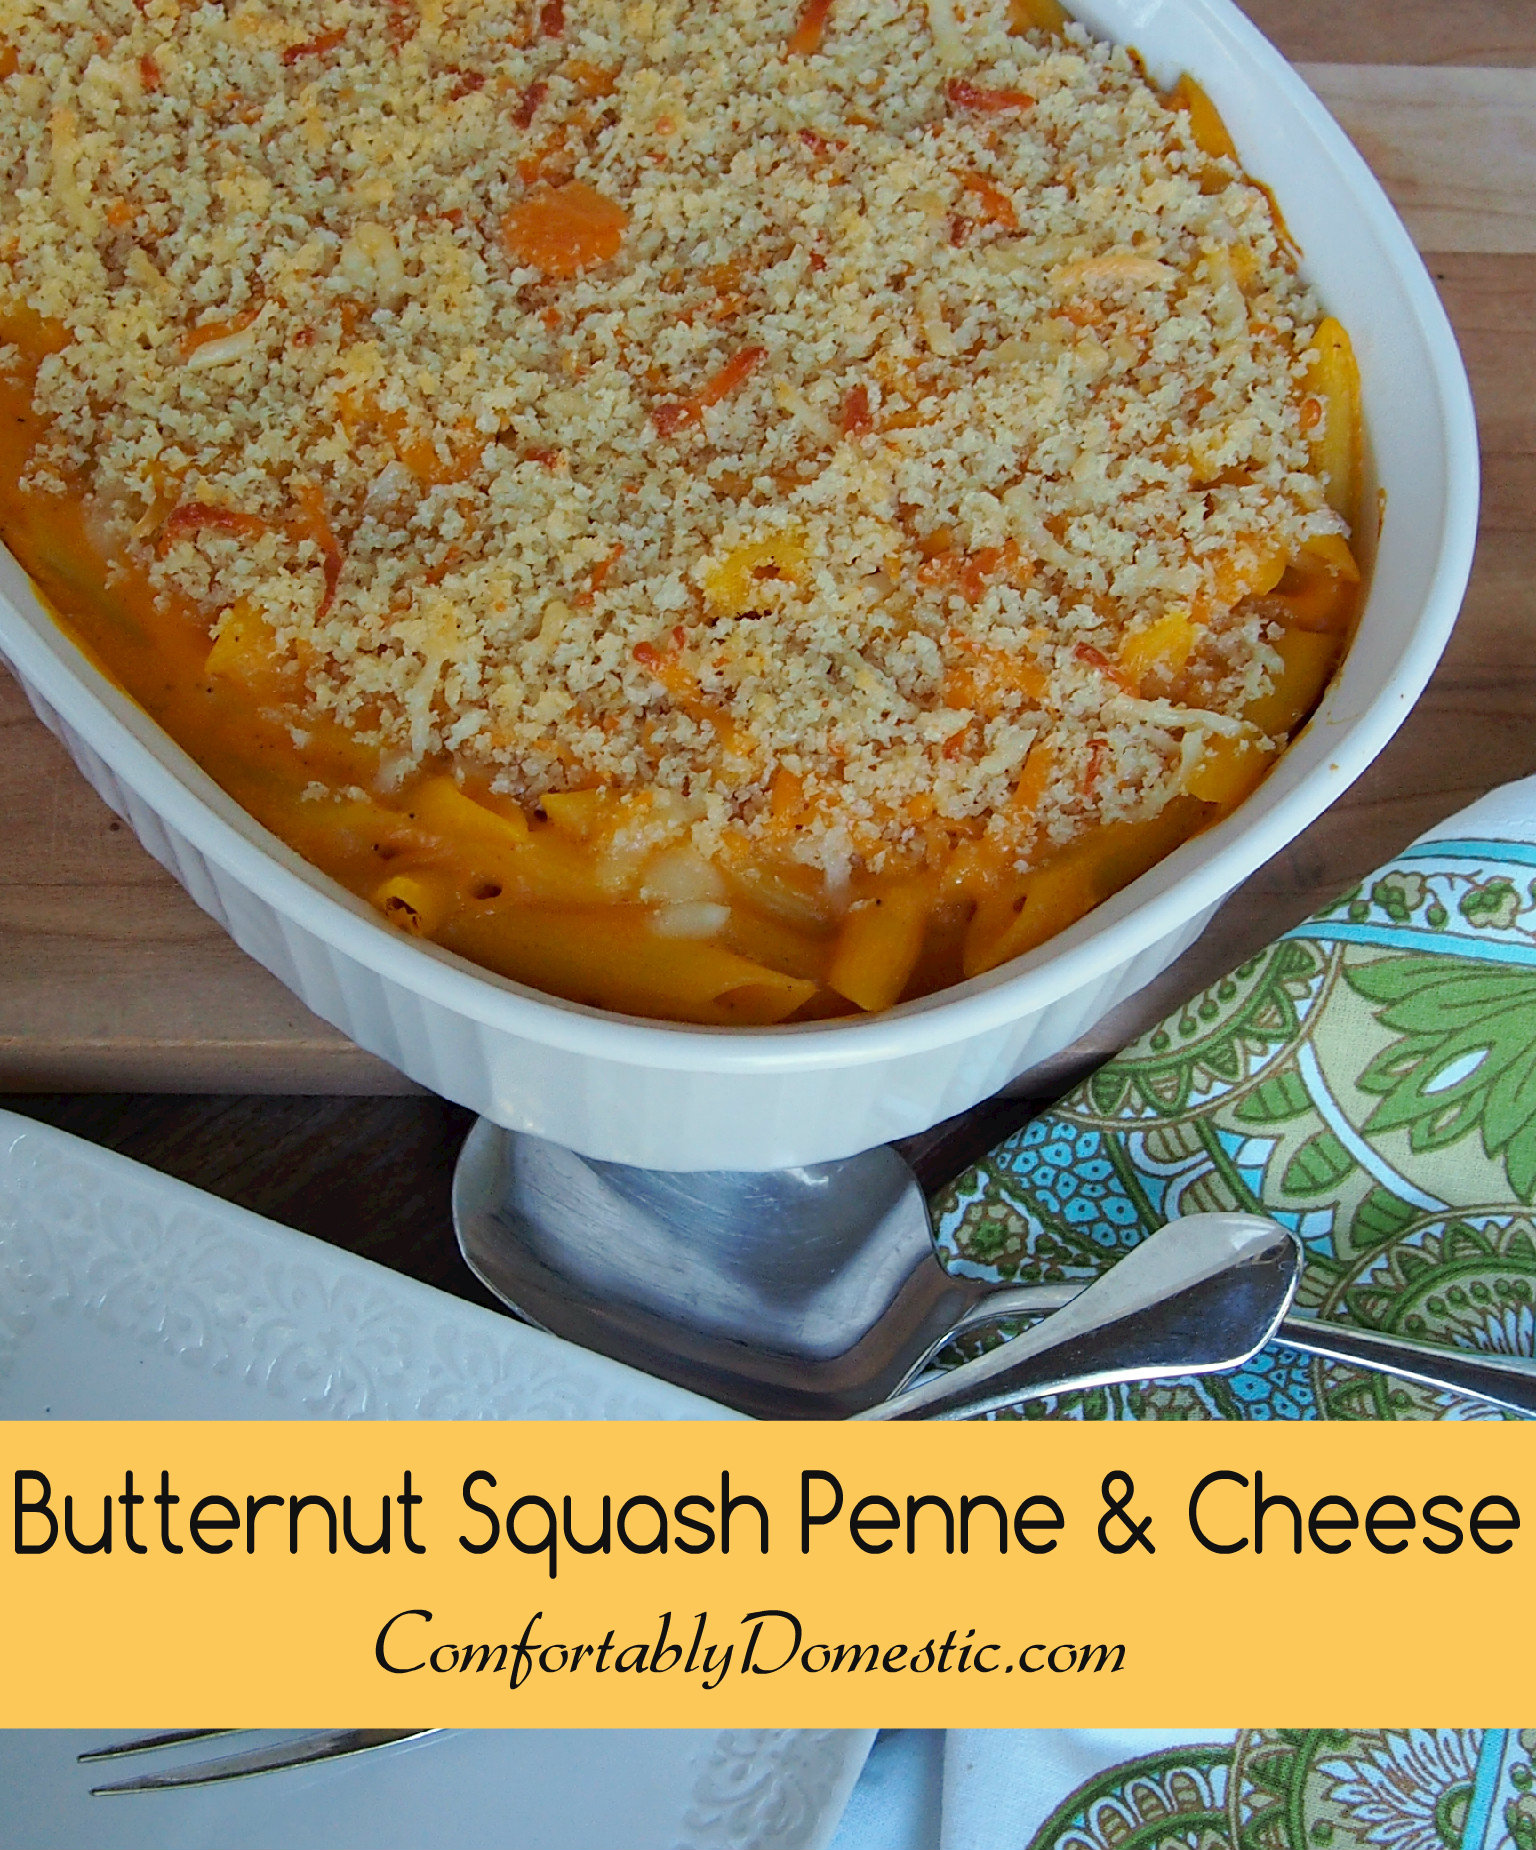 ... Comfort Food: Butternut Squash Penne and Cheese | Comfortably Domestic